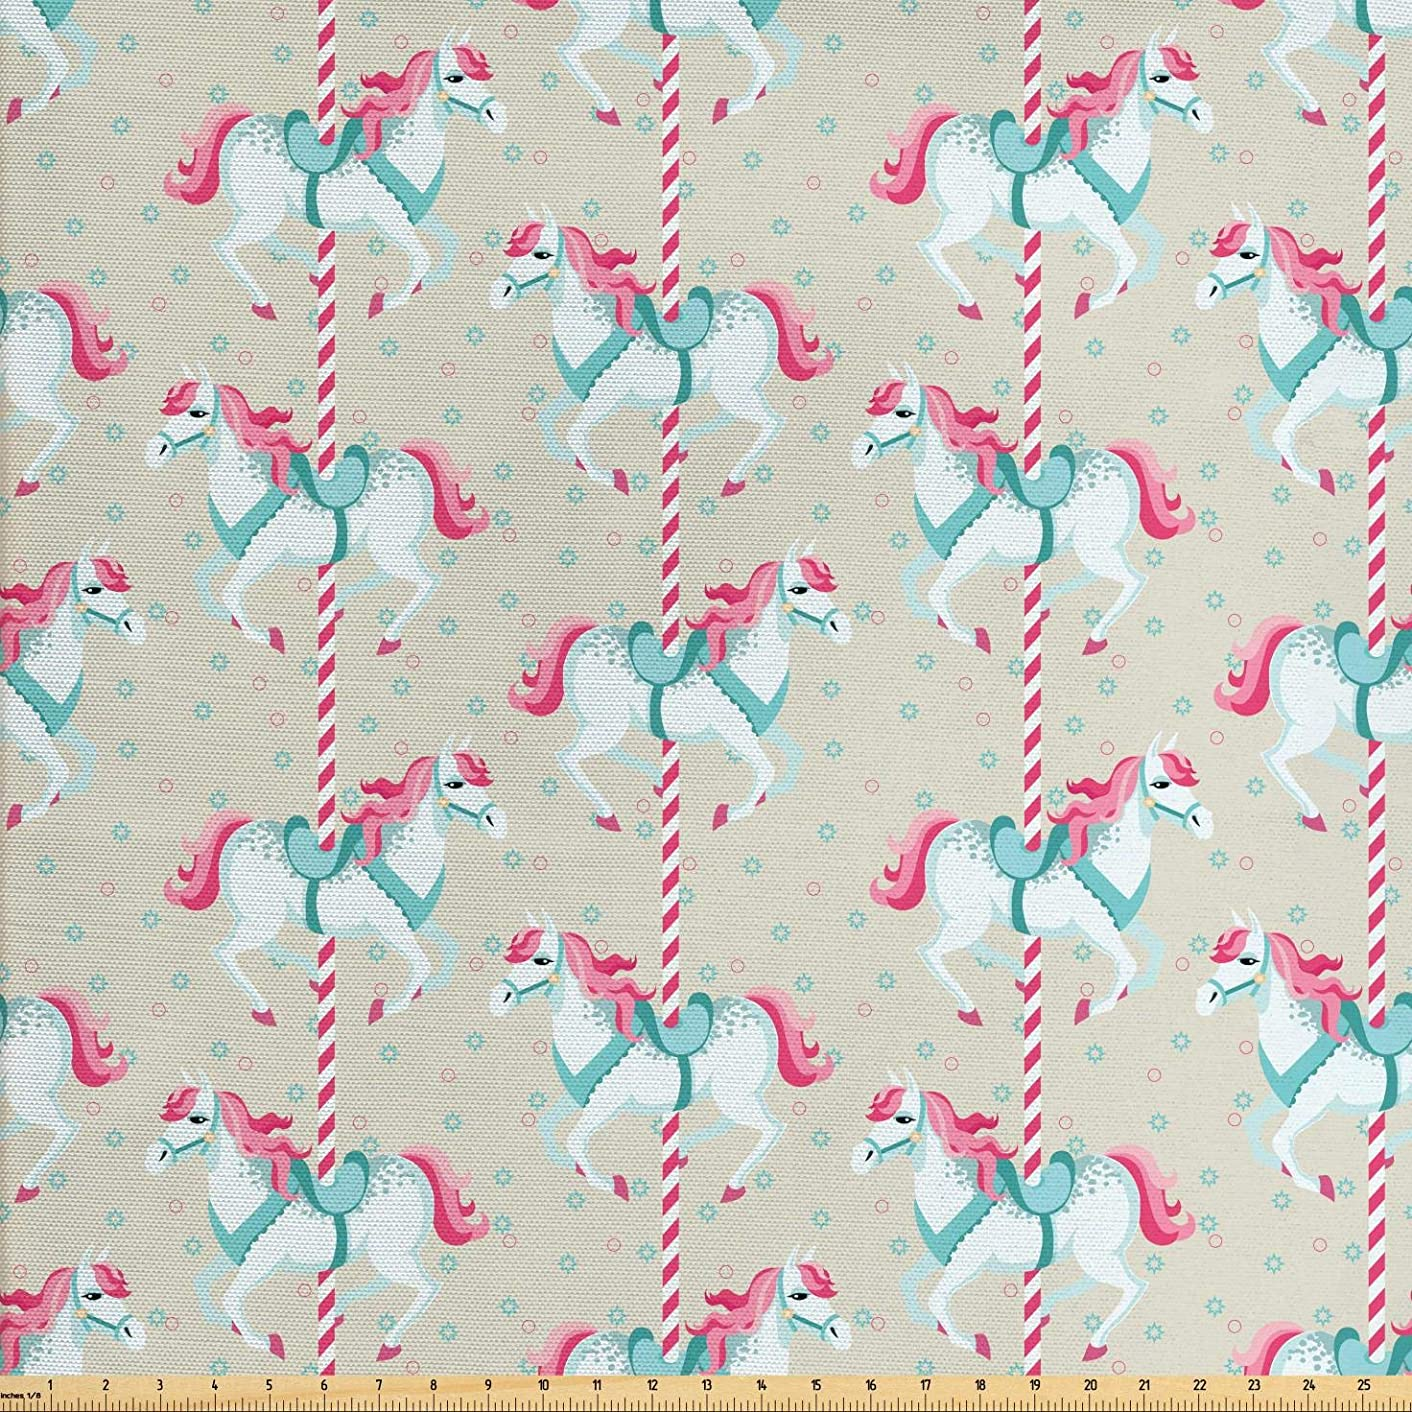 Ambesonne Toy Horse Fabric by The Yard, Merry Go Round Amusement Park Carousel Toy Ride Roundabout Children Park, Decorative Fabric for Upholstery and Home Accents, 1 Yard, Beige Seafoam Pink